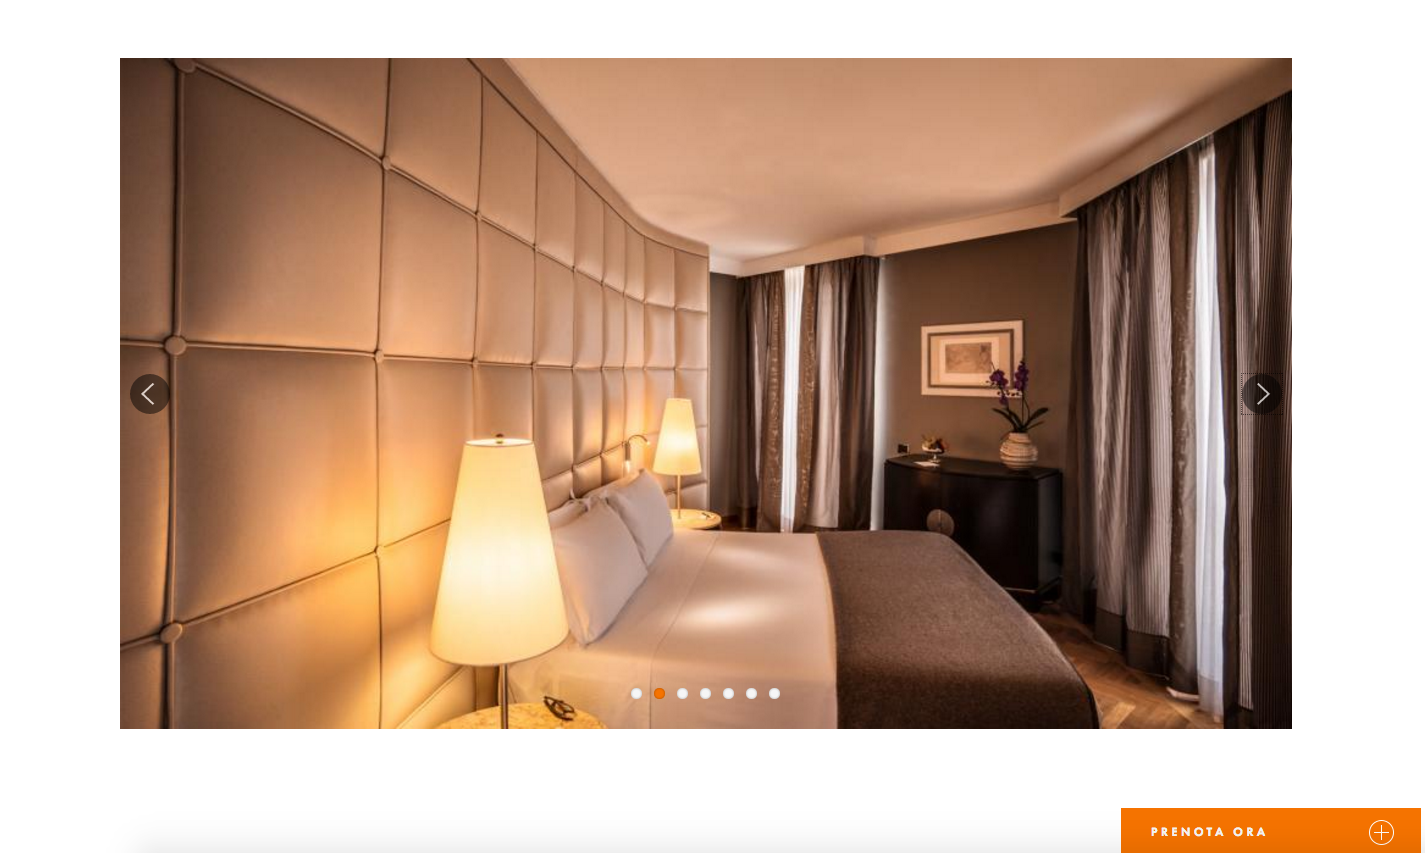 offerta_efficace_turismo_fortyseven_hotel_2.png